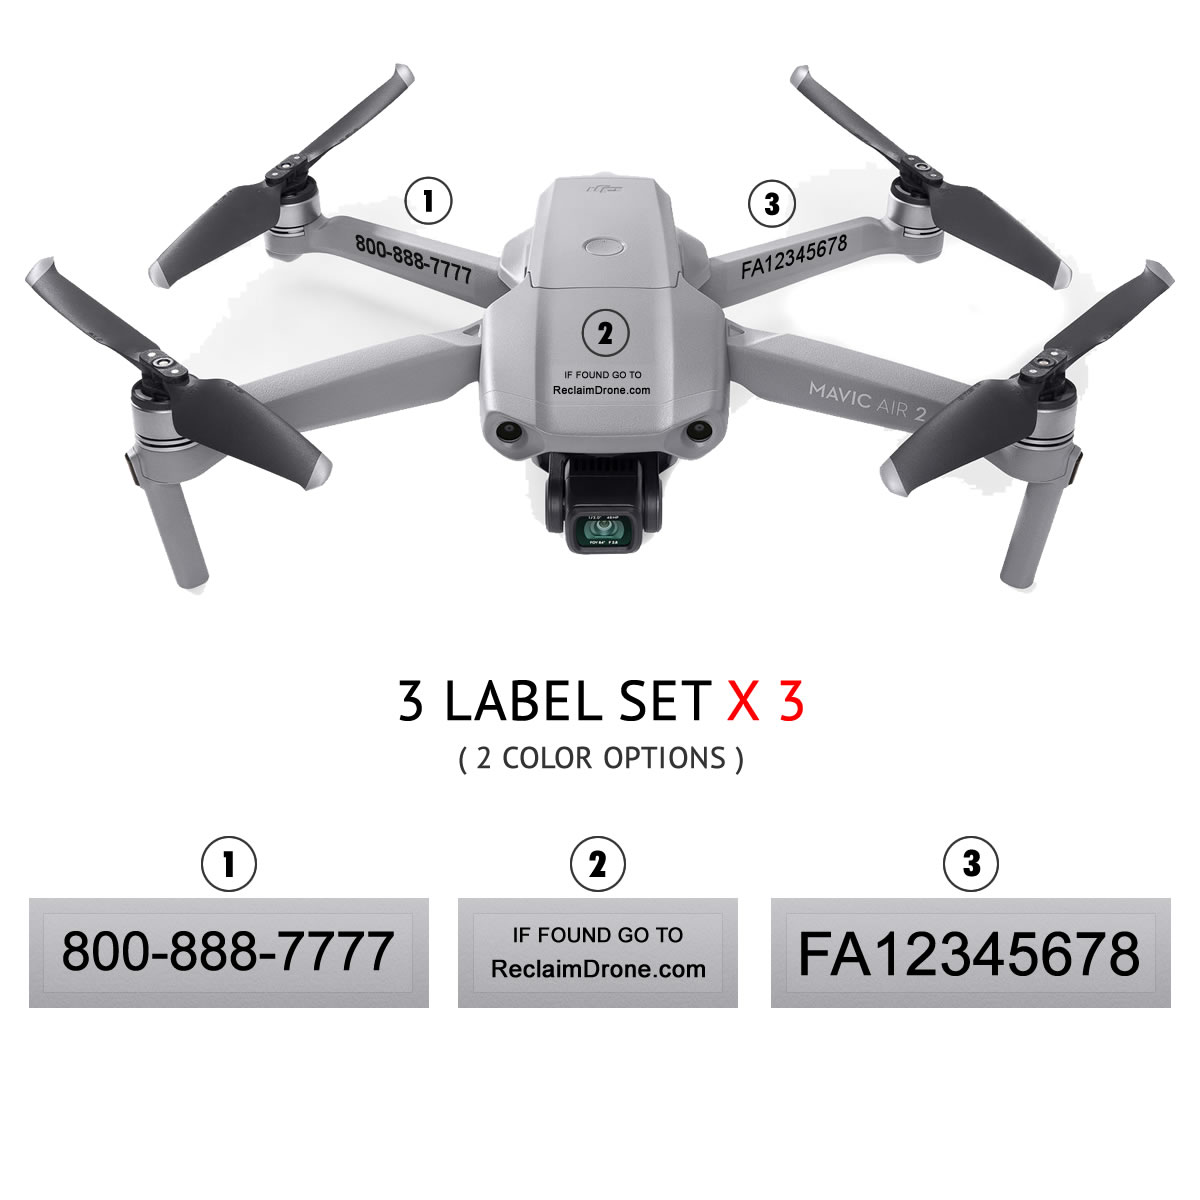 Mavic Air 2 – FAA Registration Labels, FAA and Phone number in black text on clear background